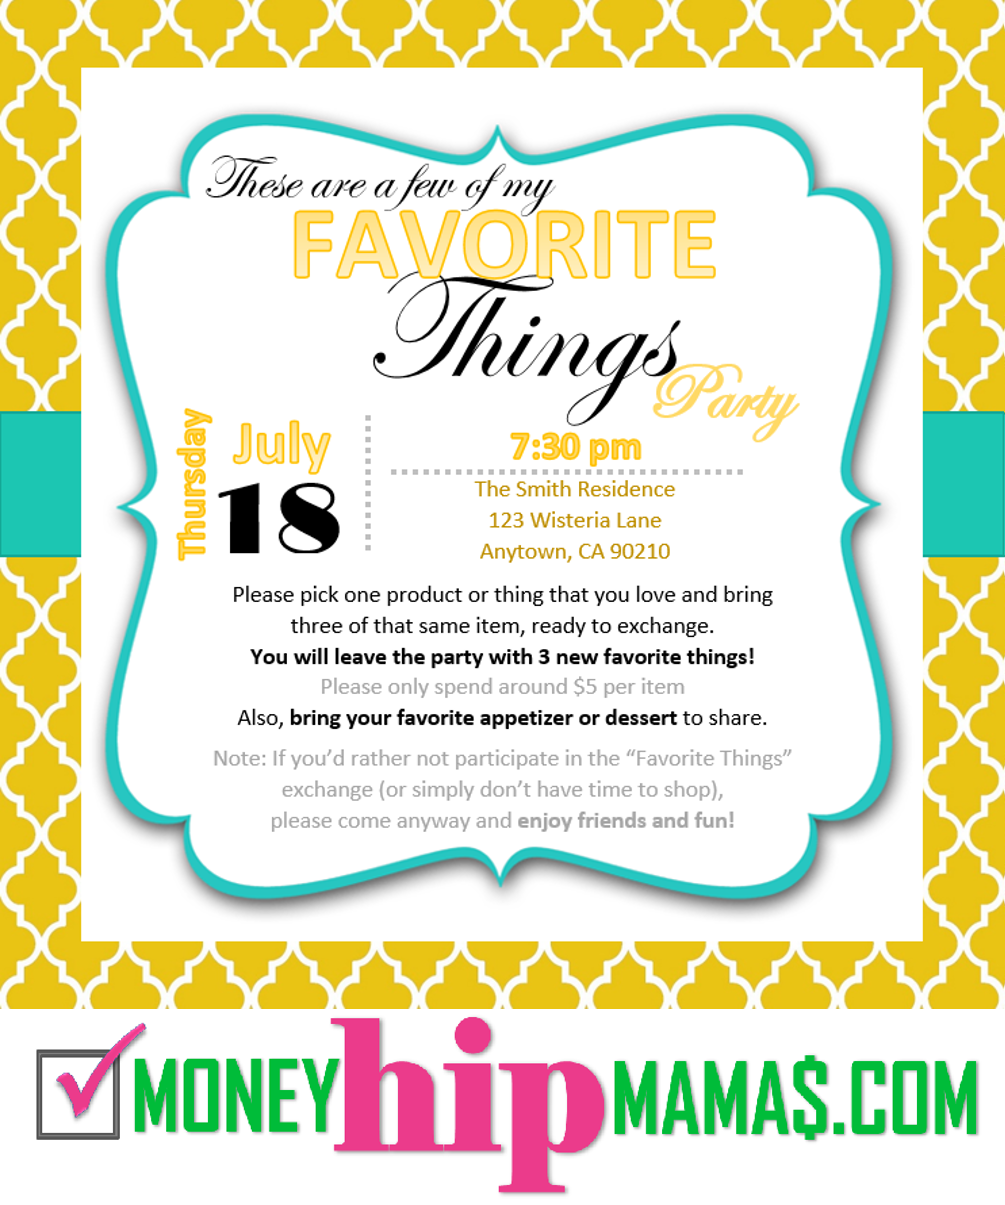 Mommy blog about personal finance, money, budget, retirement, saving ...